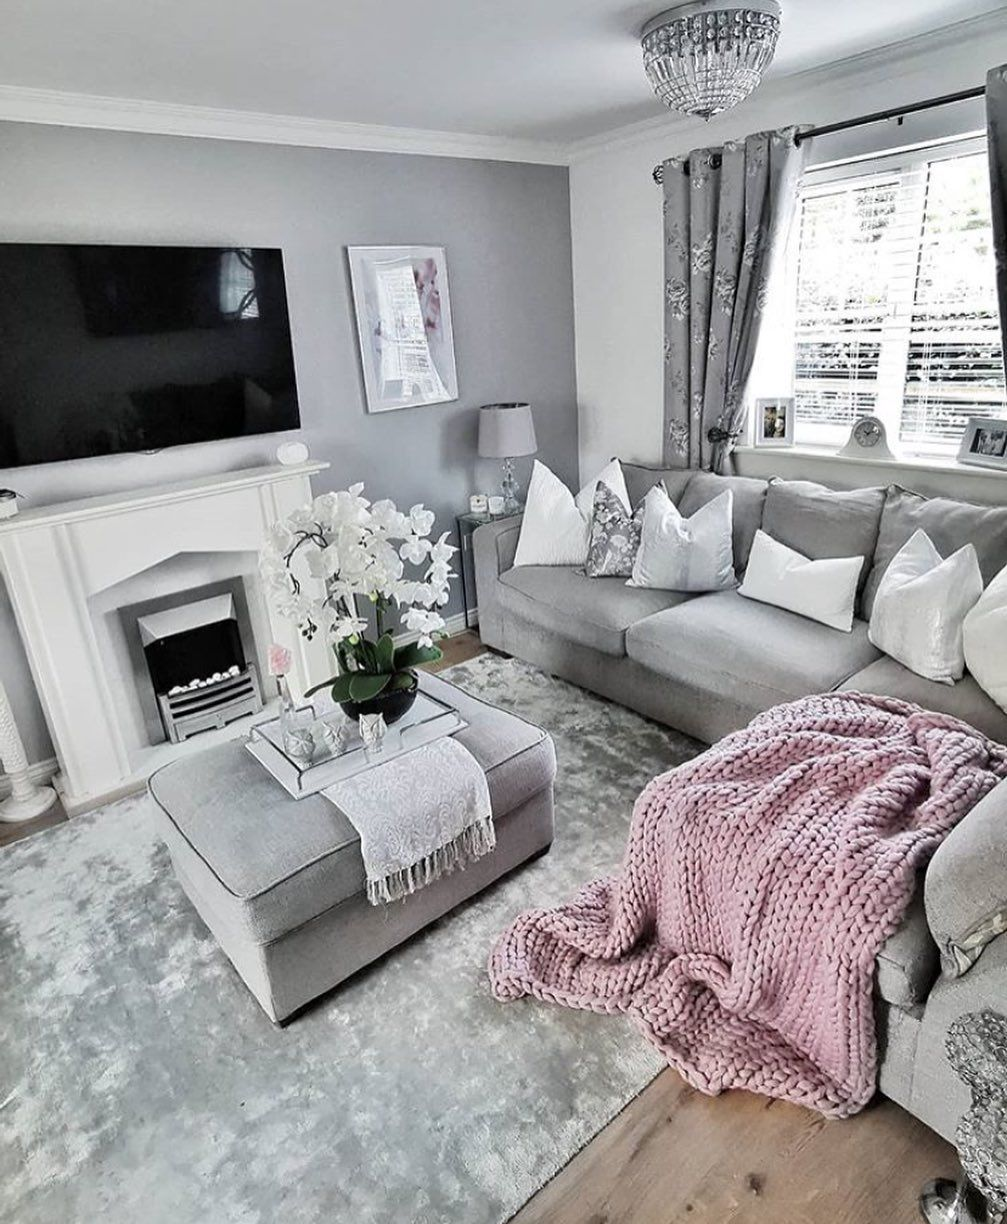 Interiors Home Decor Ideas On Instagram Beautiful Living Room Inspiration Thehill Living Room Decor Gray Gray Living Room Design Living Room Decor Cozy #pictures #of #beautiful #living #room